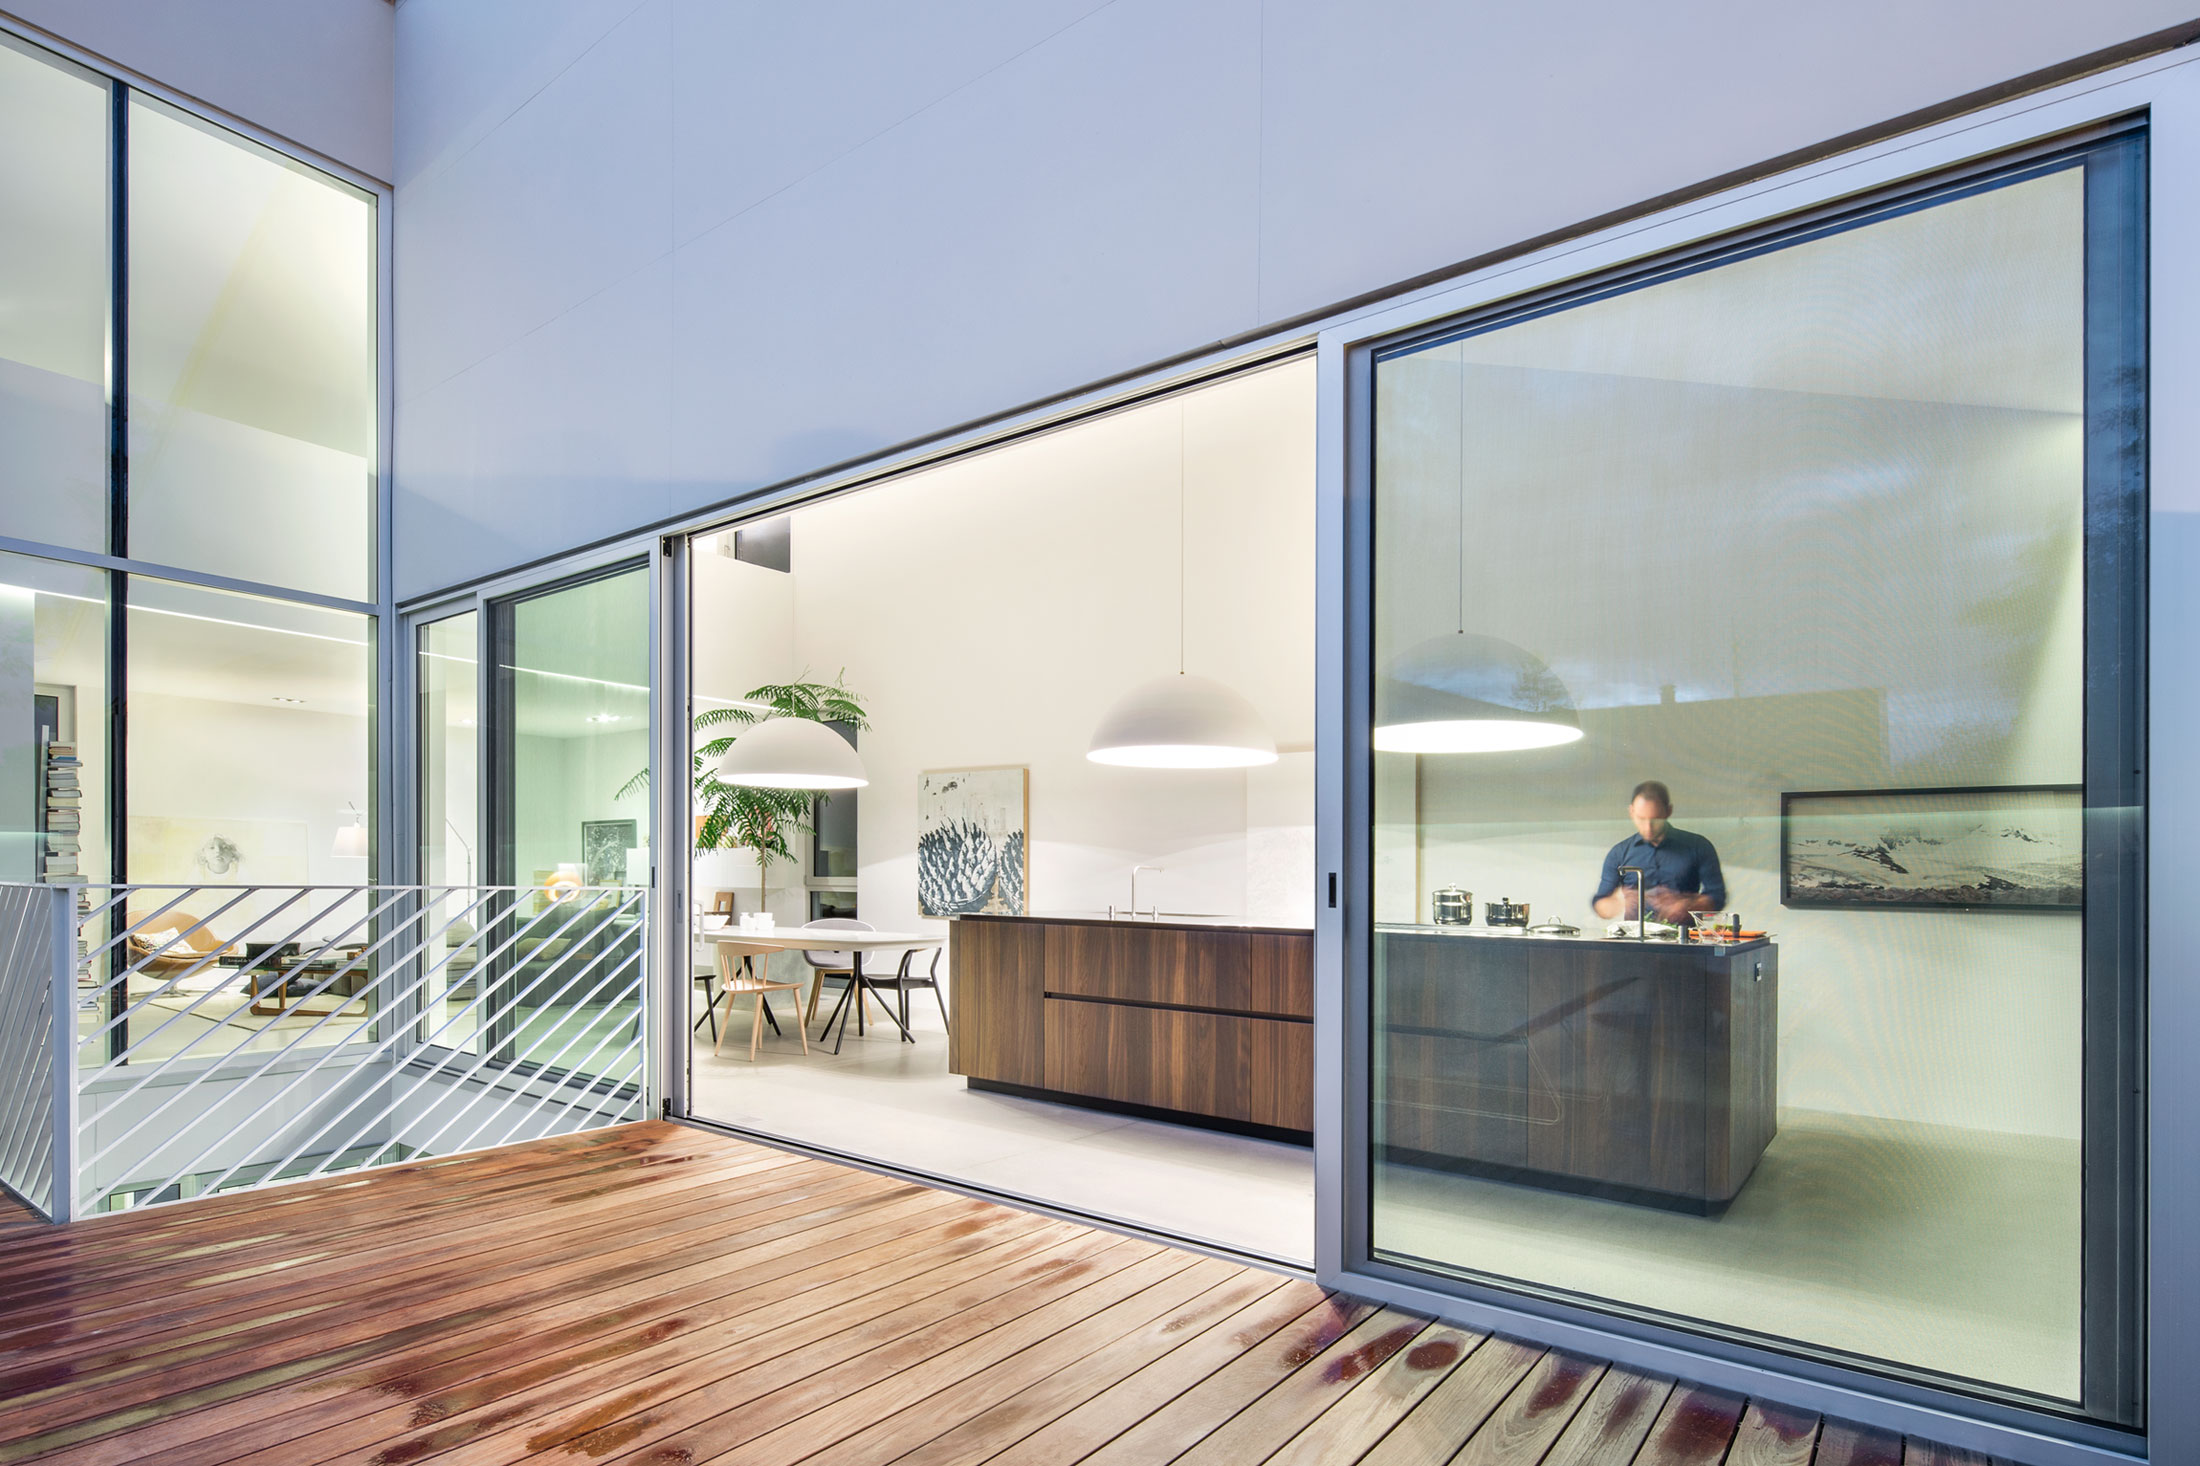 Eclectic Residence, Carved Out To Let The Light In